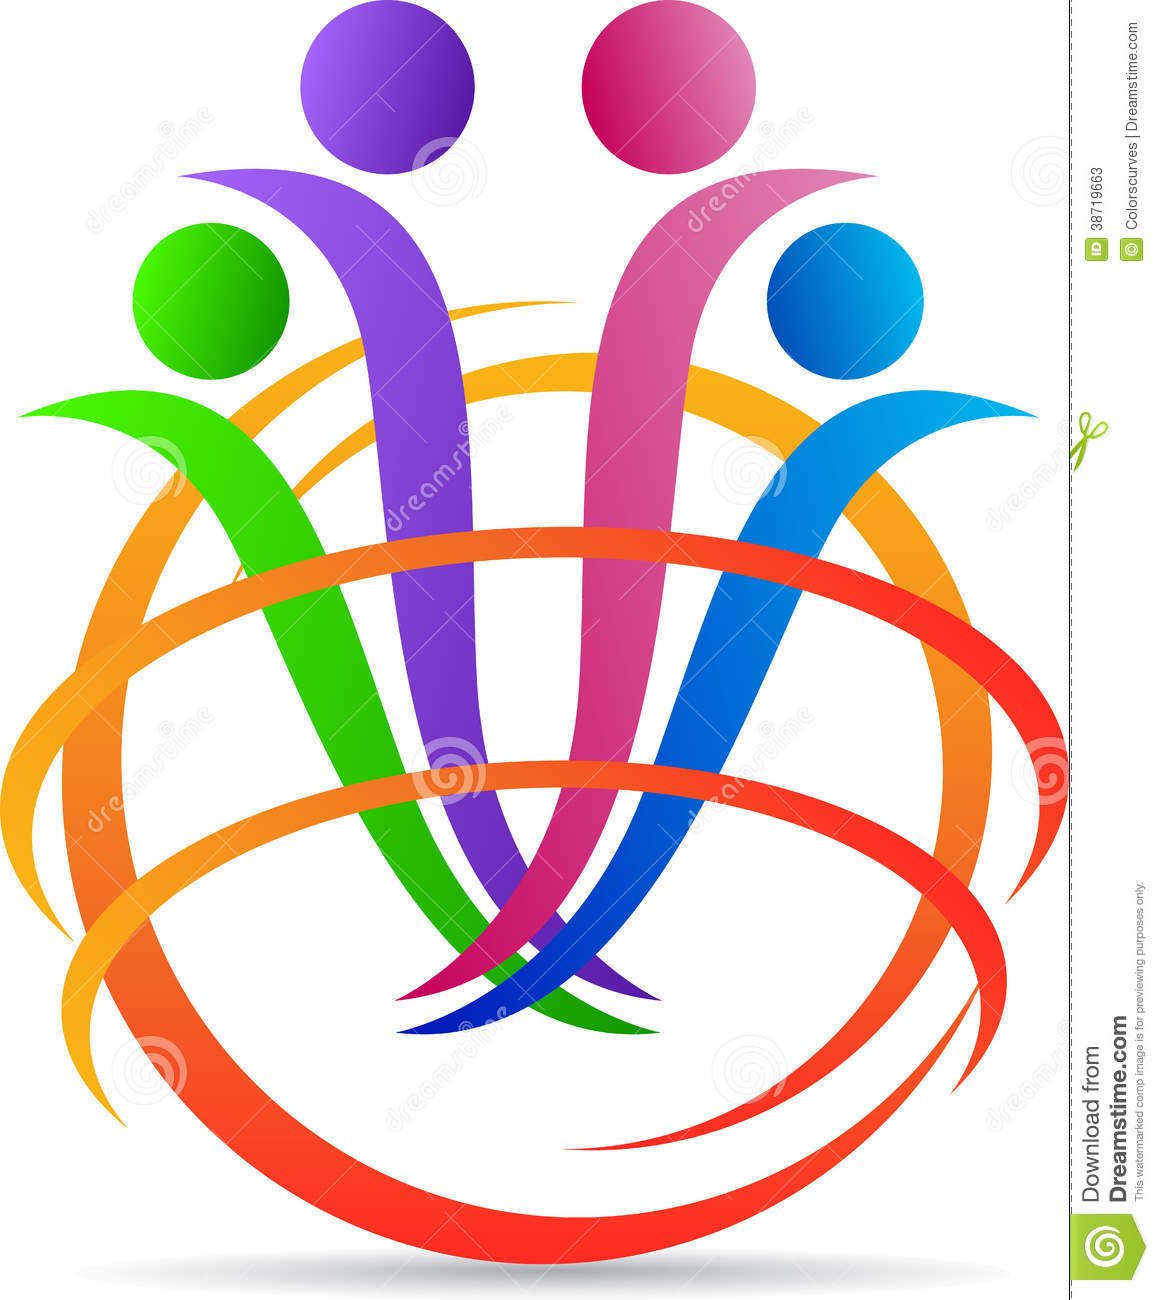 global diversity management Diversity as a competitive advantage  global demographic patterns and trends as well as social and cultural  diversity management is a systematic effort across.